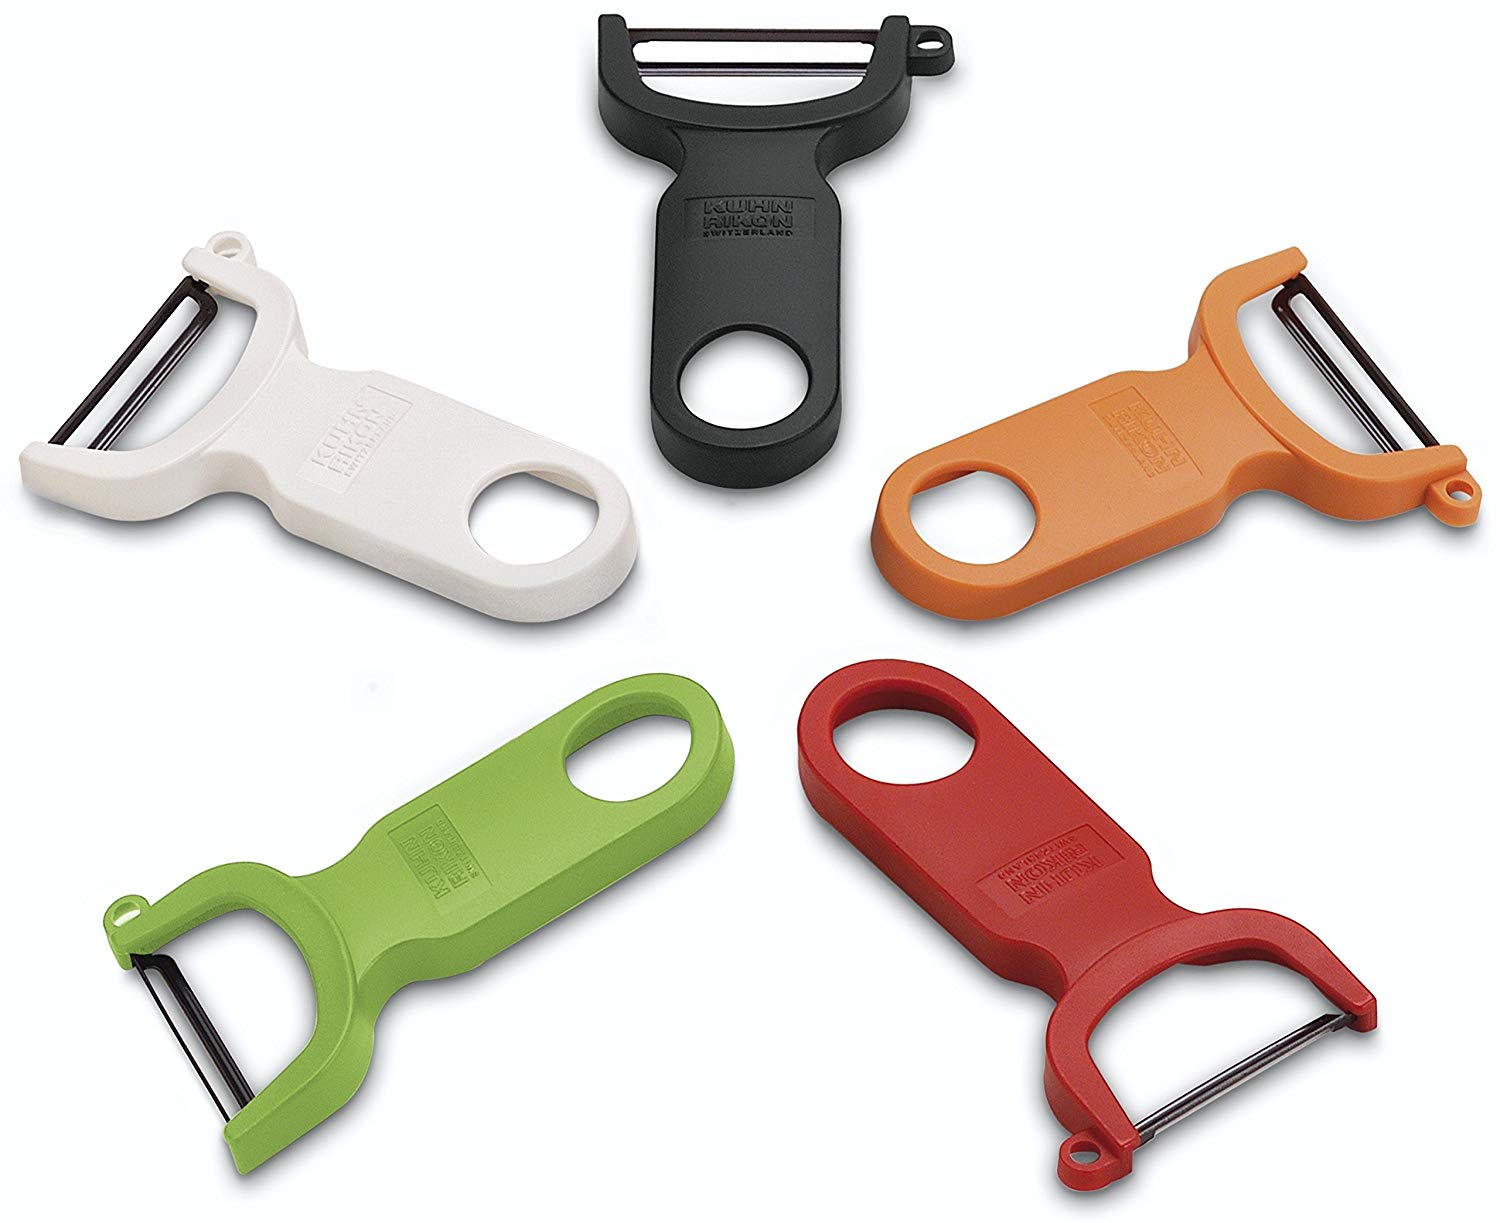 3 original sets of potato peeler in different colors